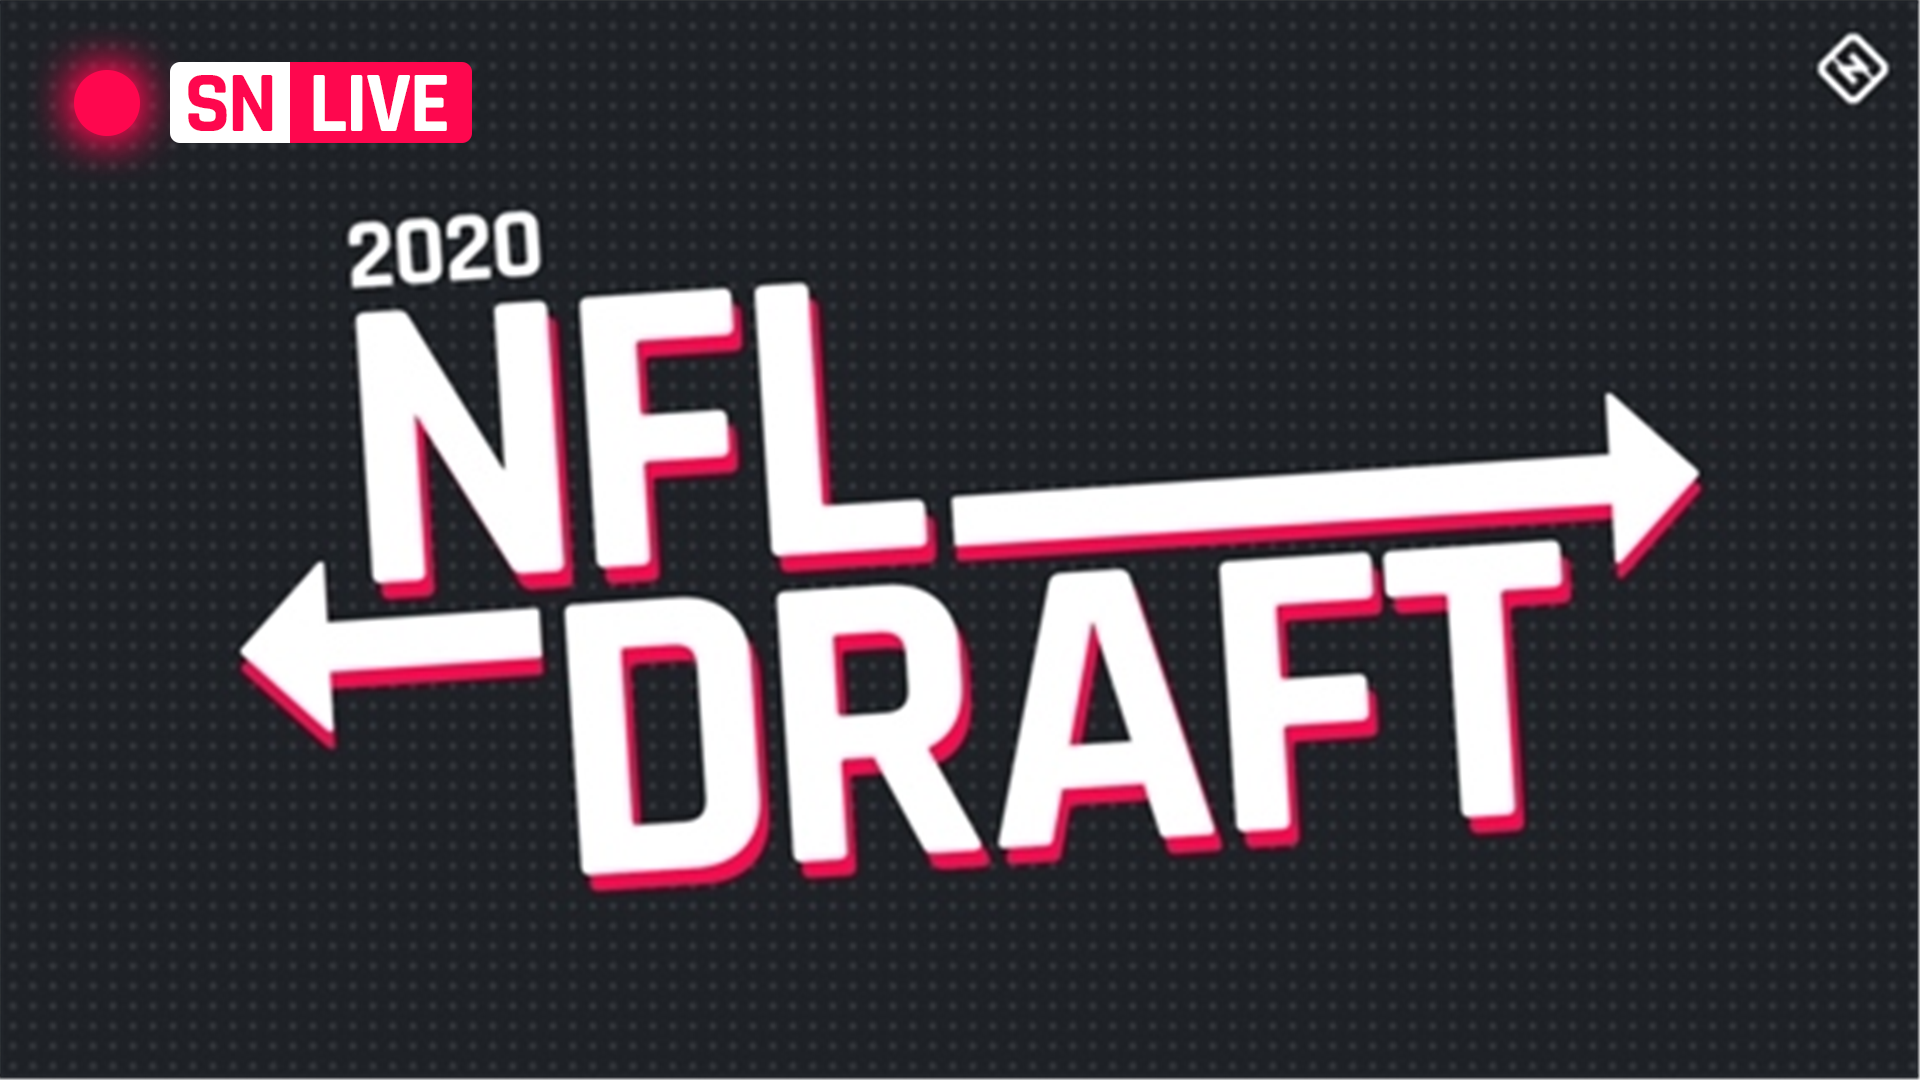 NFL Draft rumors 2020: Tracking the latest leaks, news, trade buzz before Round 1 1